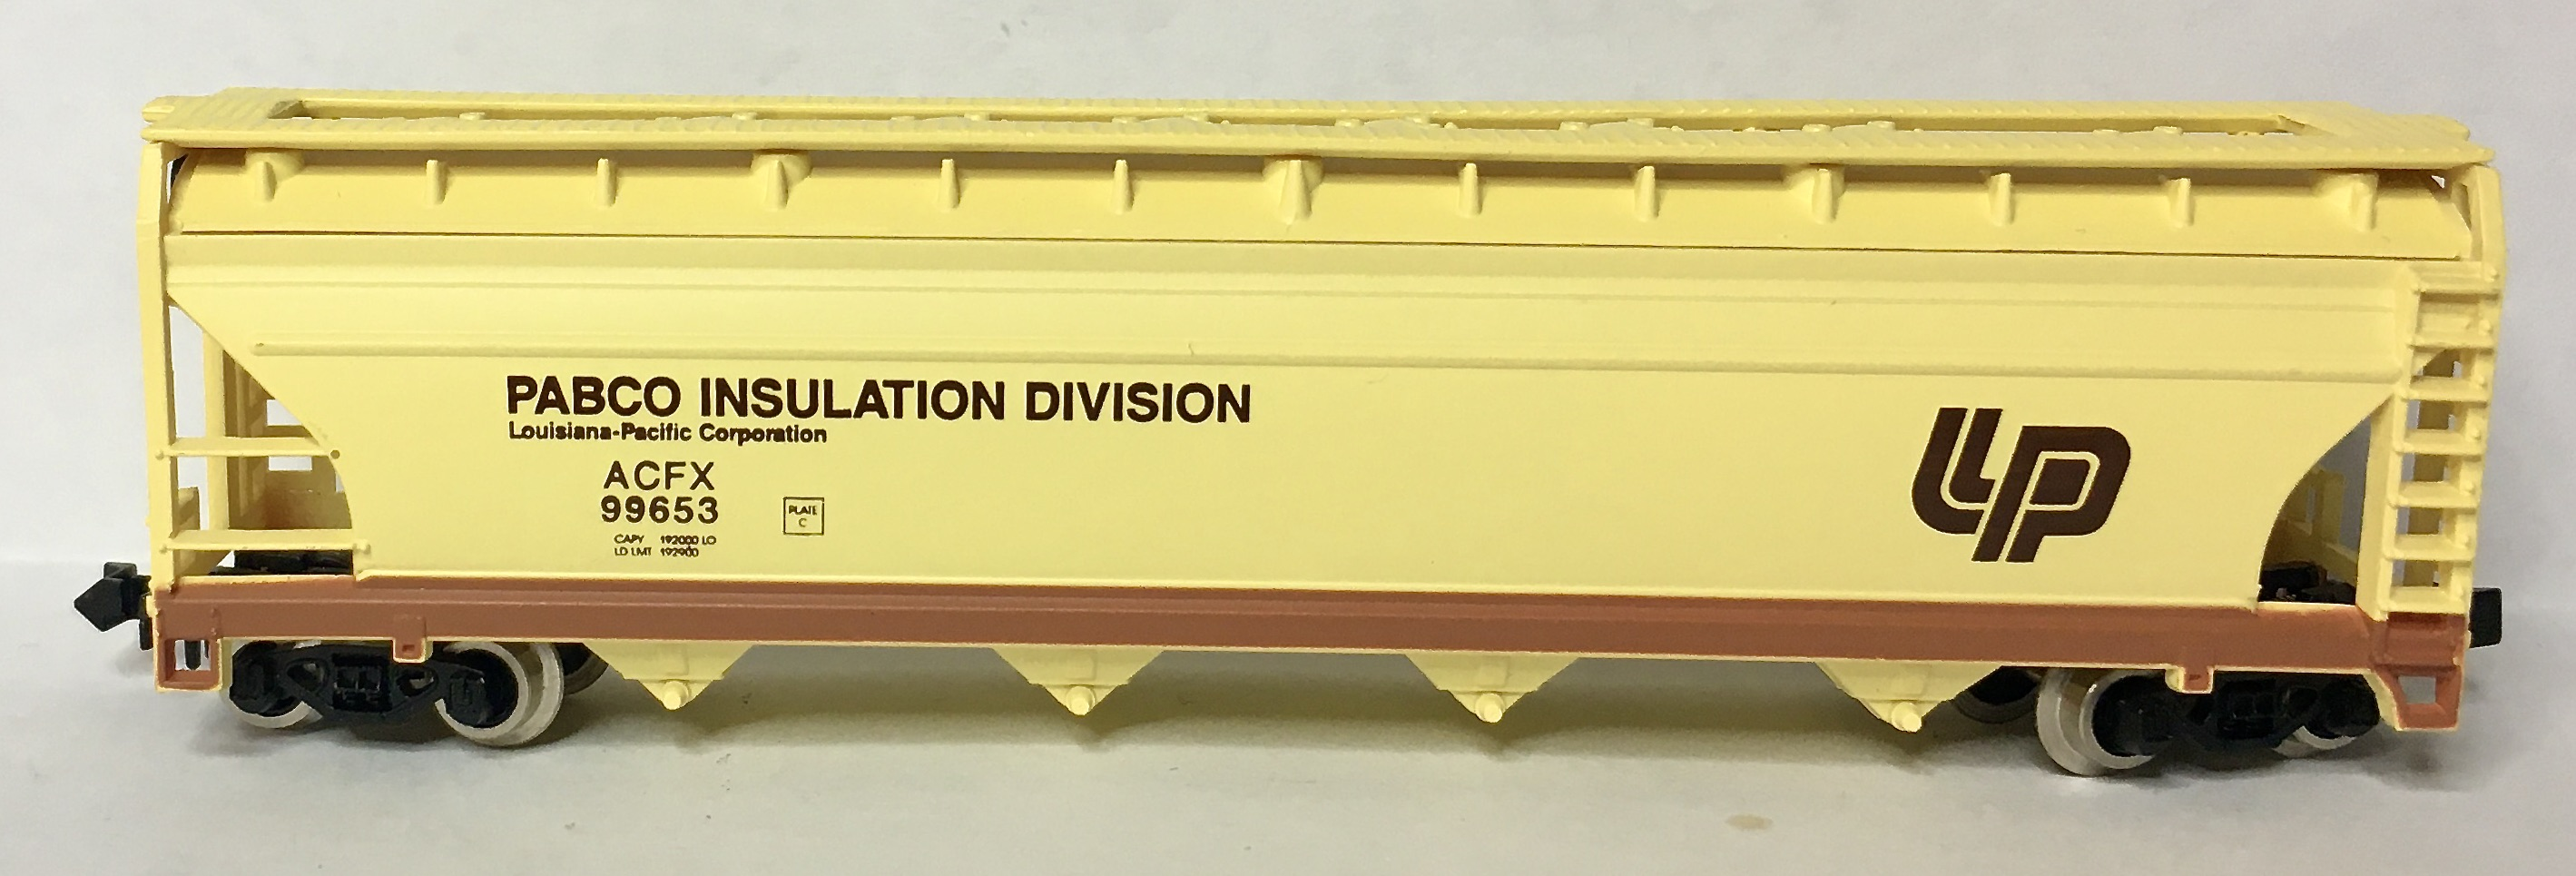 N Scale - N Hobby Distributing - BST4-00528 - Covered Hopper, 4-Bay, ACF Centerflow - Louisiana Pacific - 99653